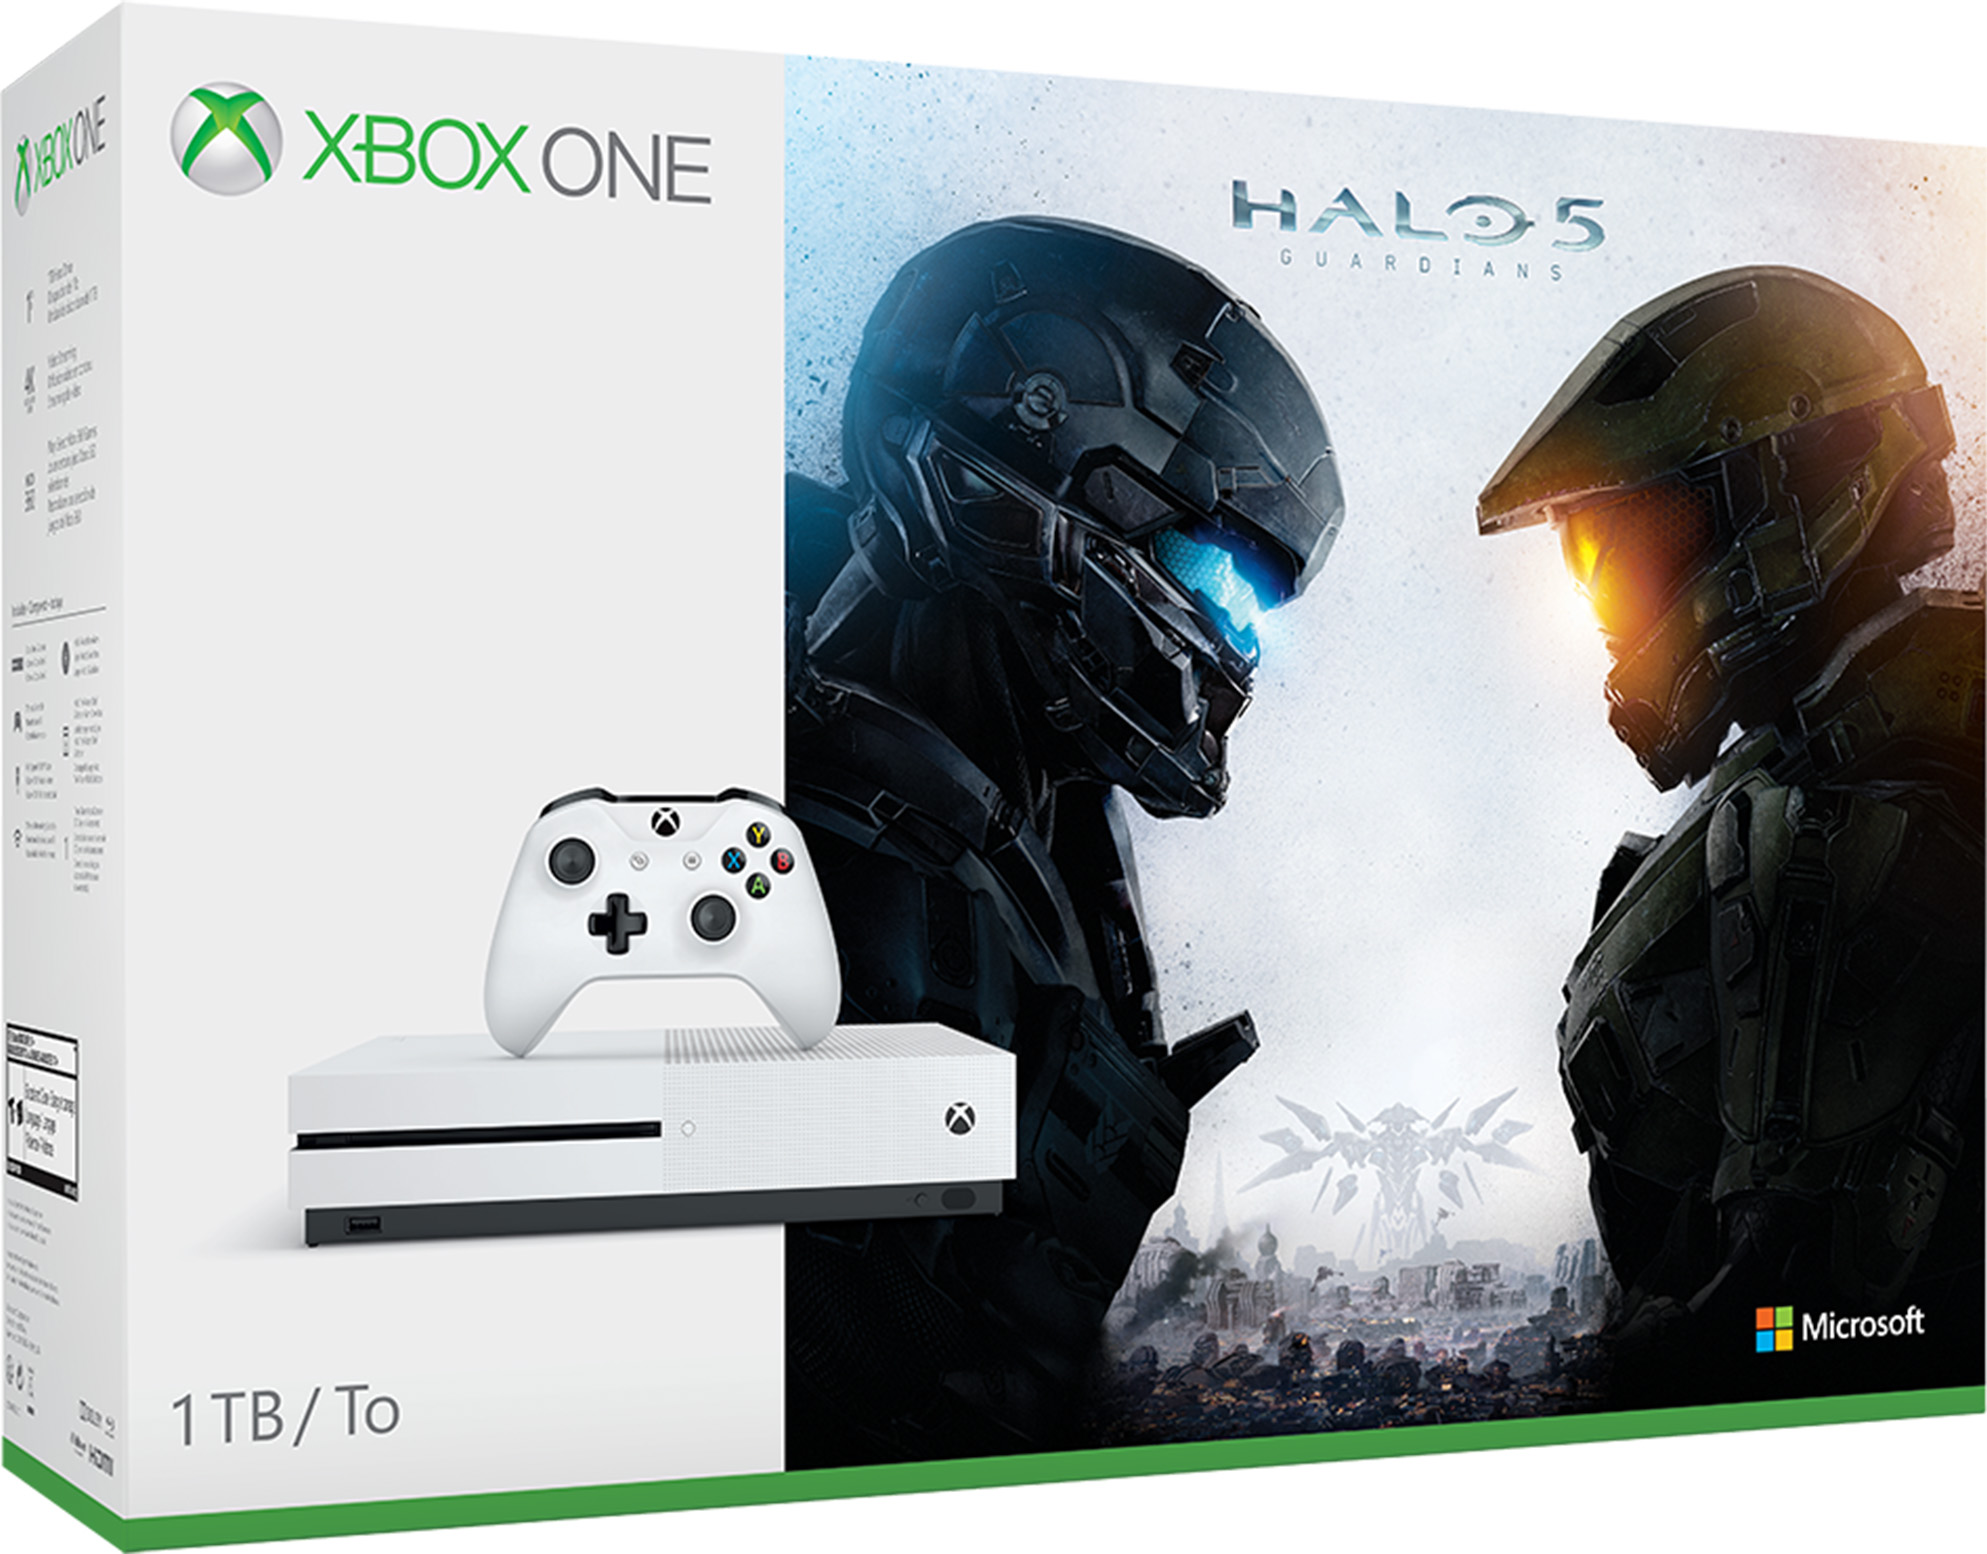 Xbox One S Console - Halo Collection Bundle